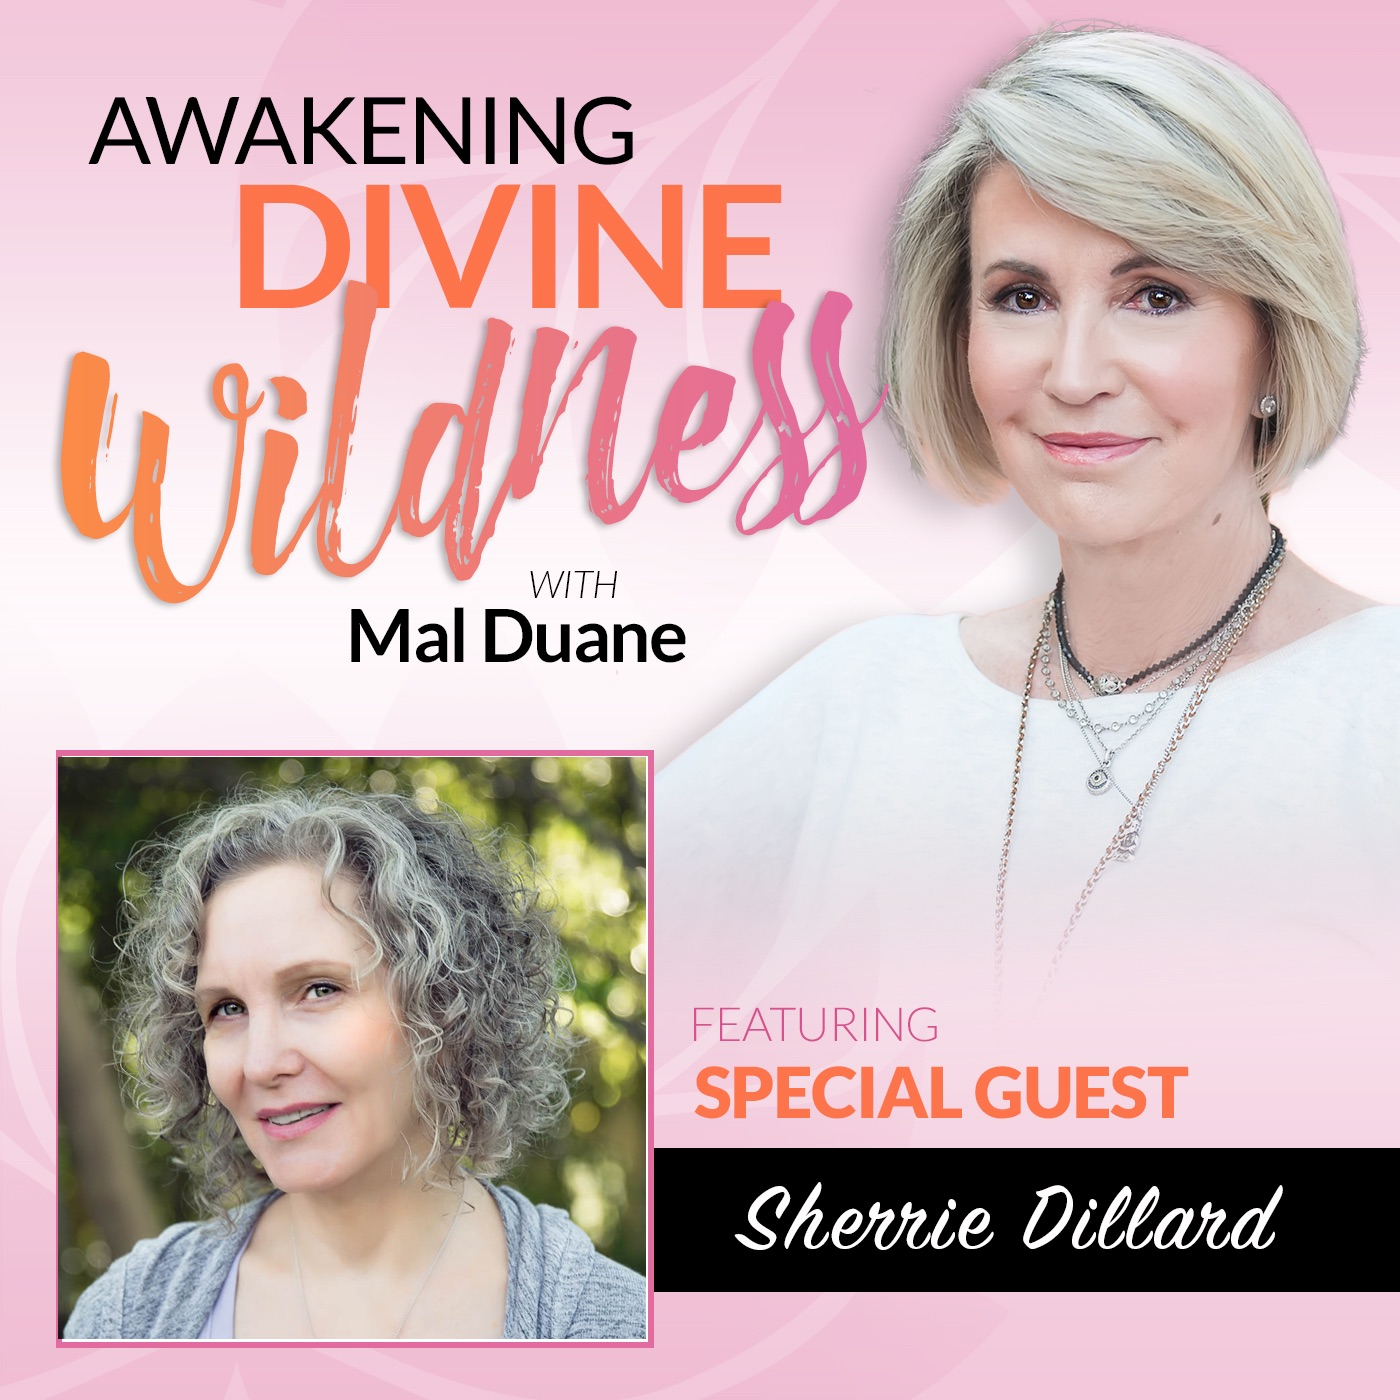 Do you sometimes think you're psychic? With Sherrie Dillard